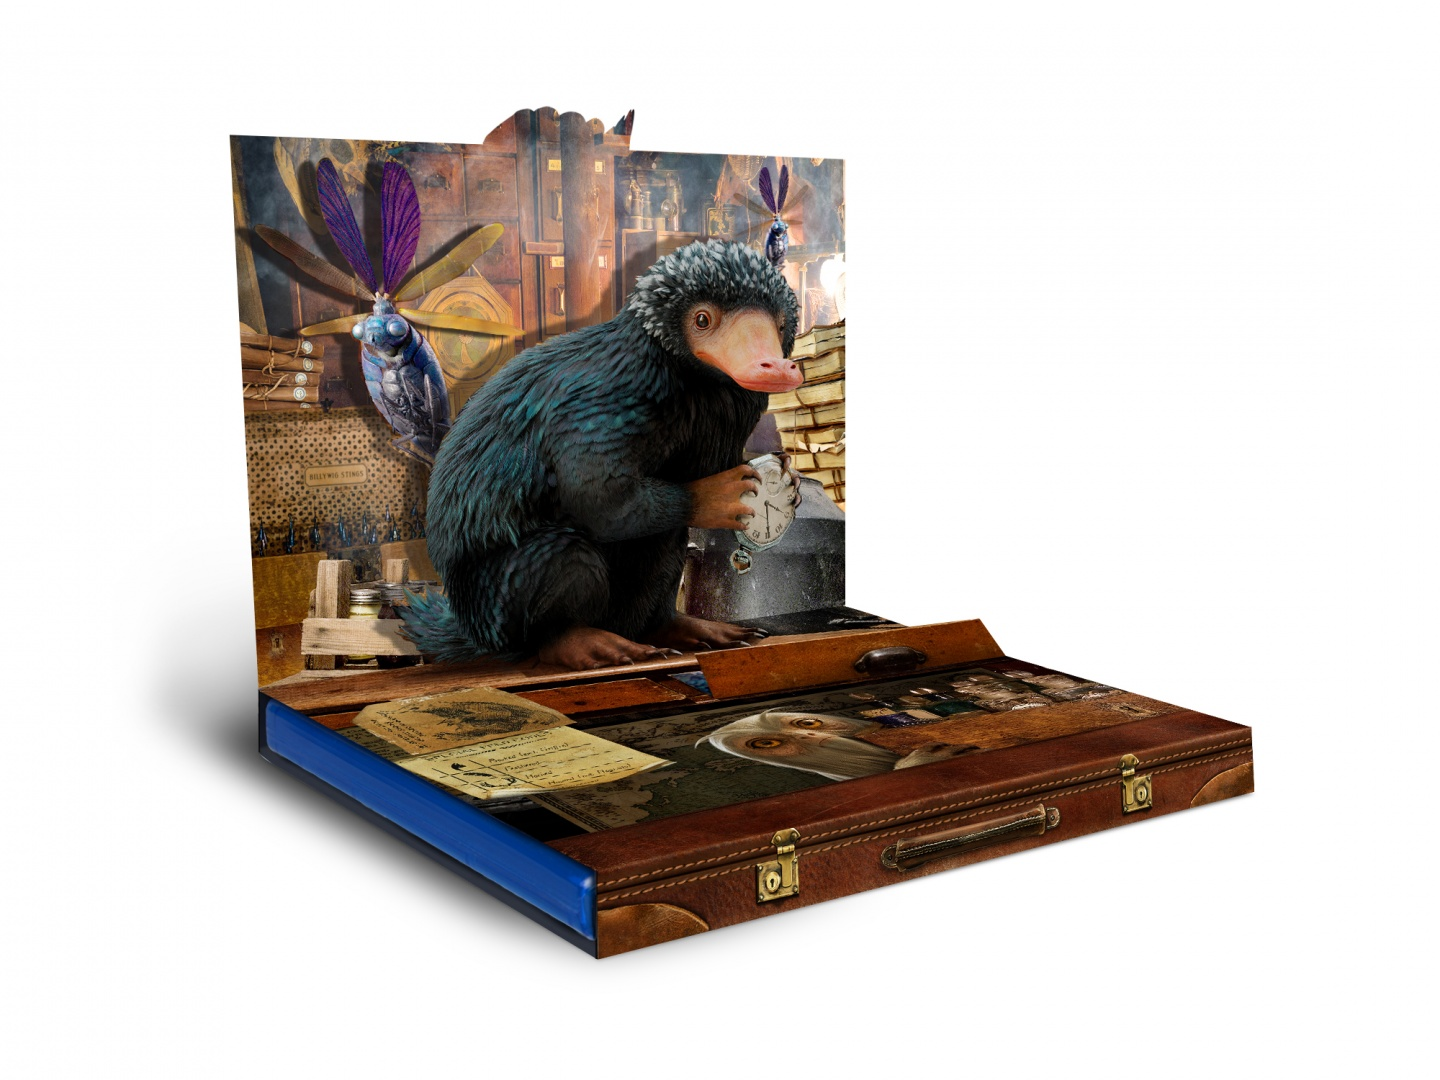 Fantastic Beasts and Where to Find Them: Newt's Case Pop-Up Packaging Thumbnail